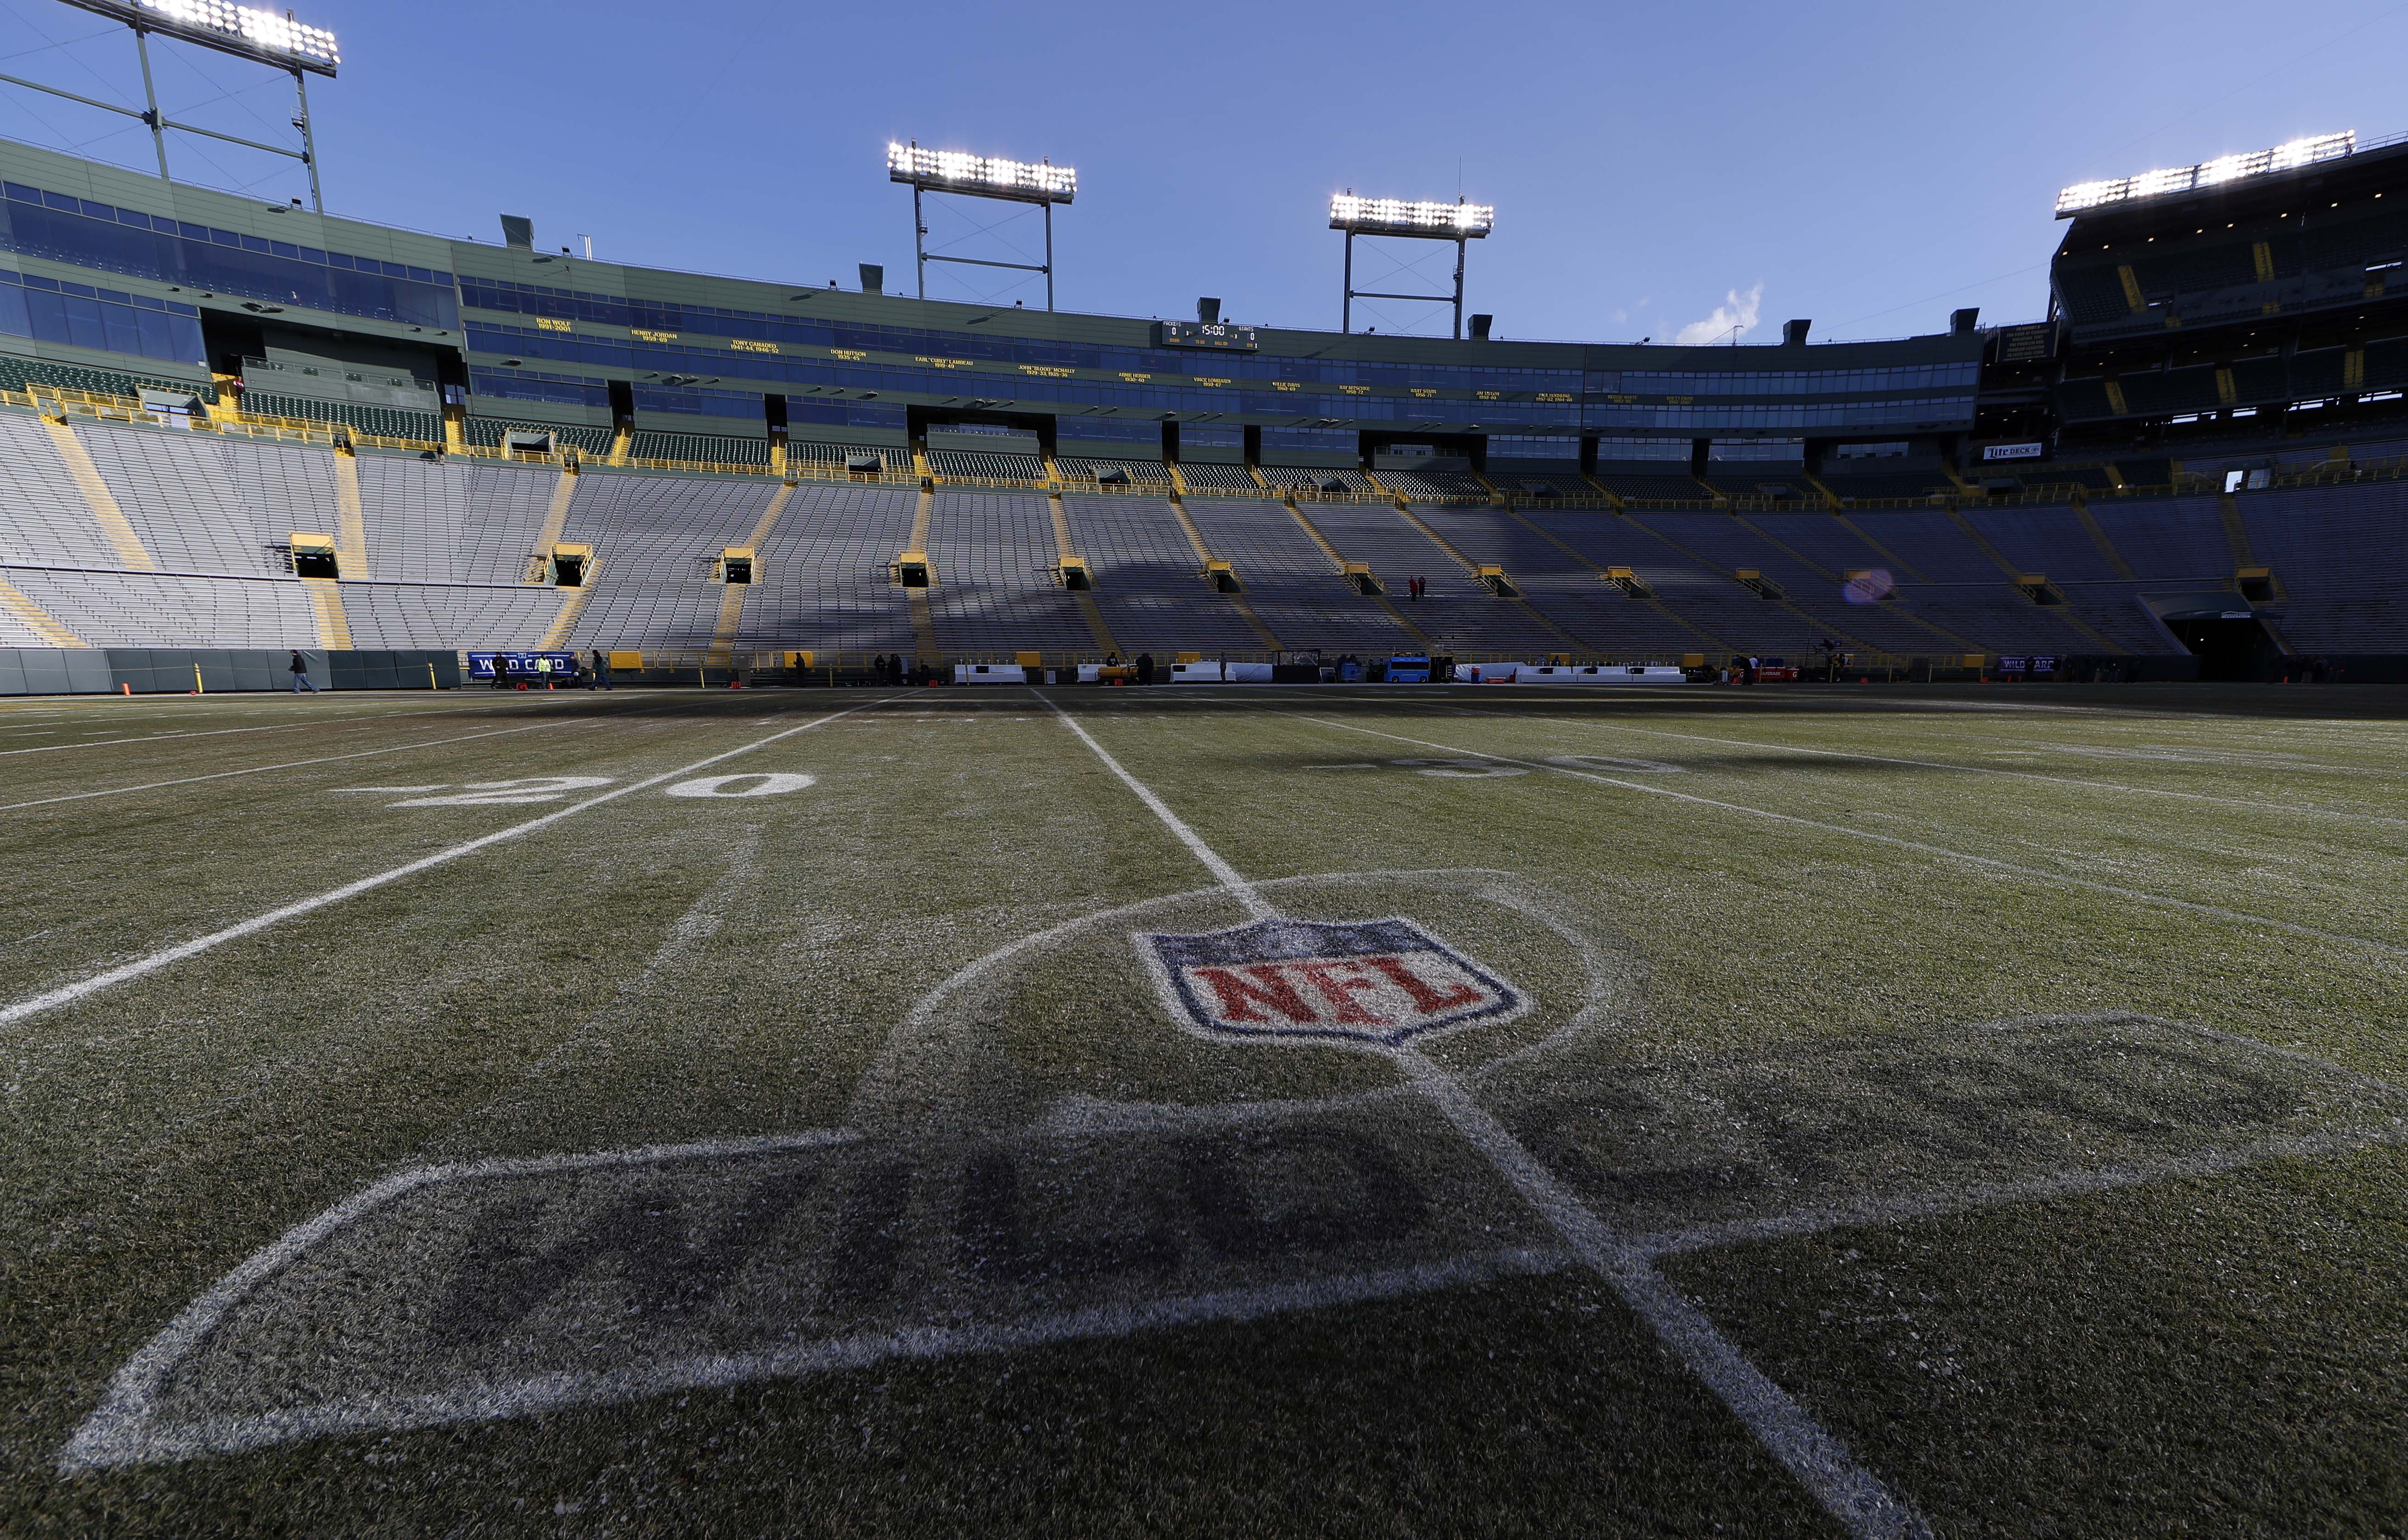 9797312-nfl-nfc-wild-card-new-york-giants-at-green-bay-packers